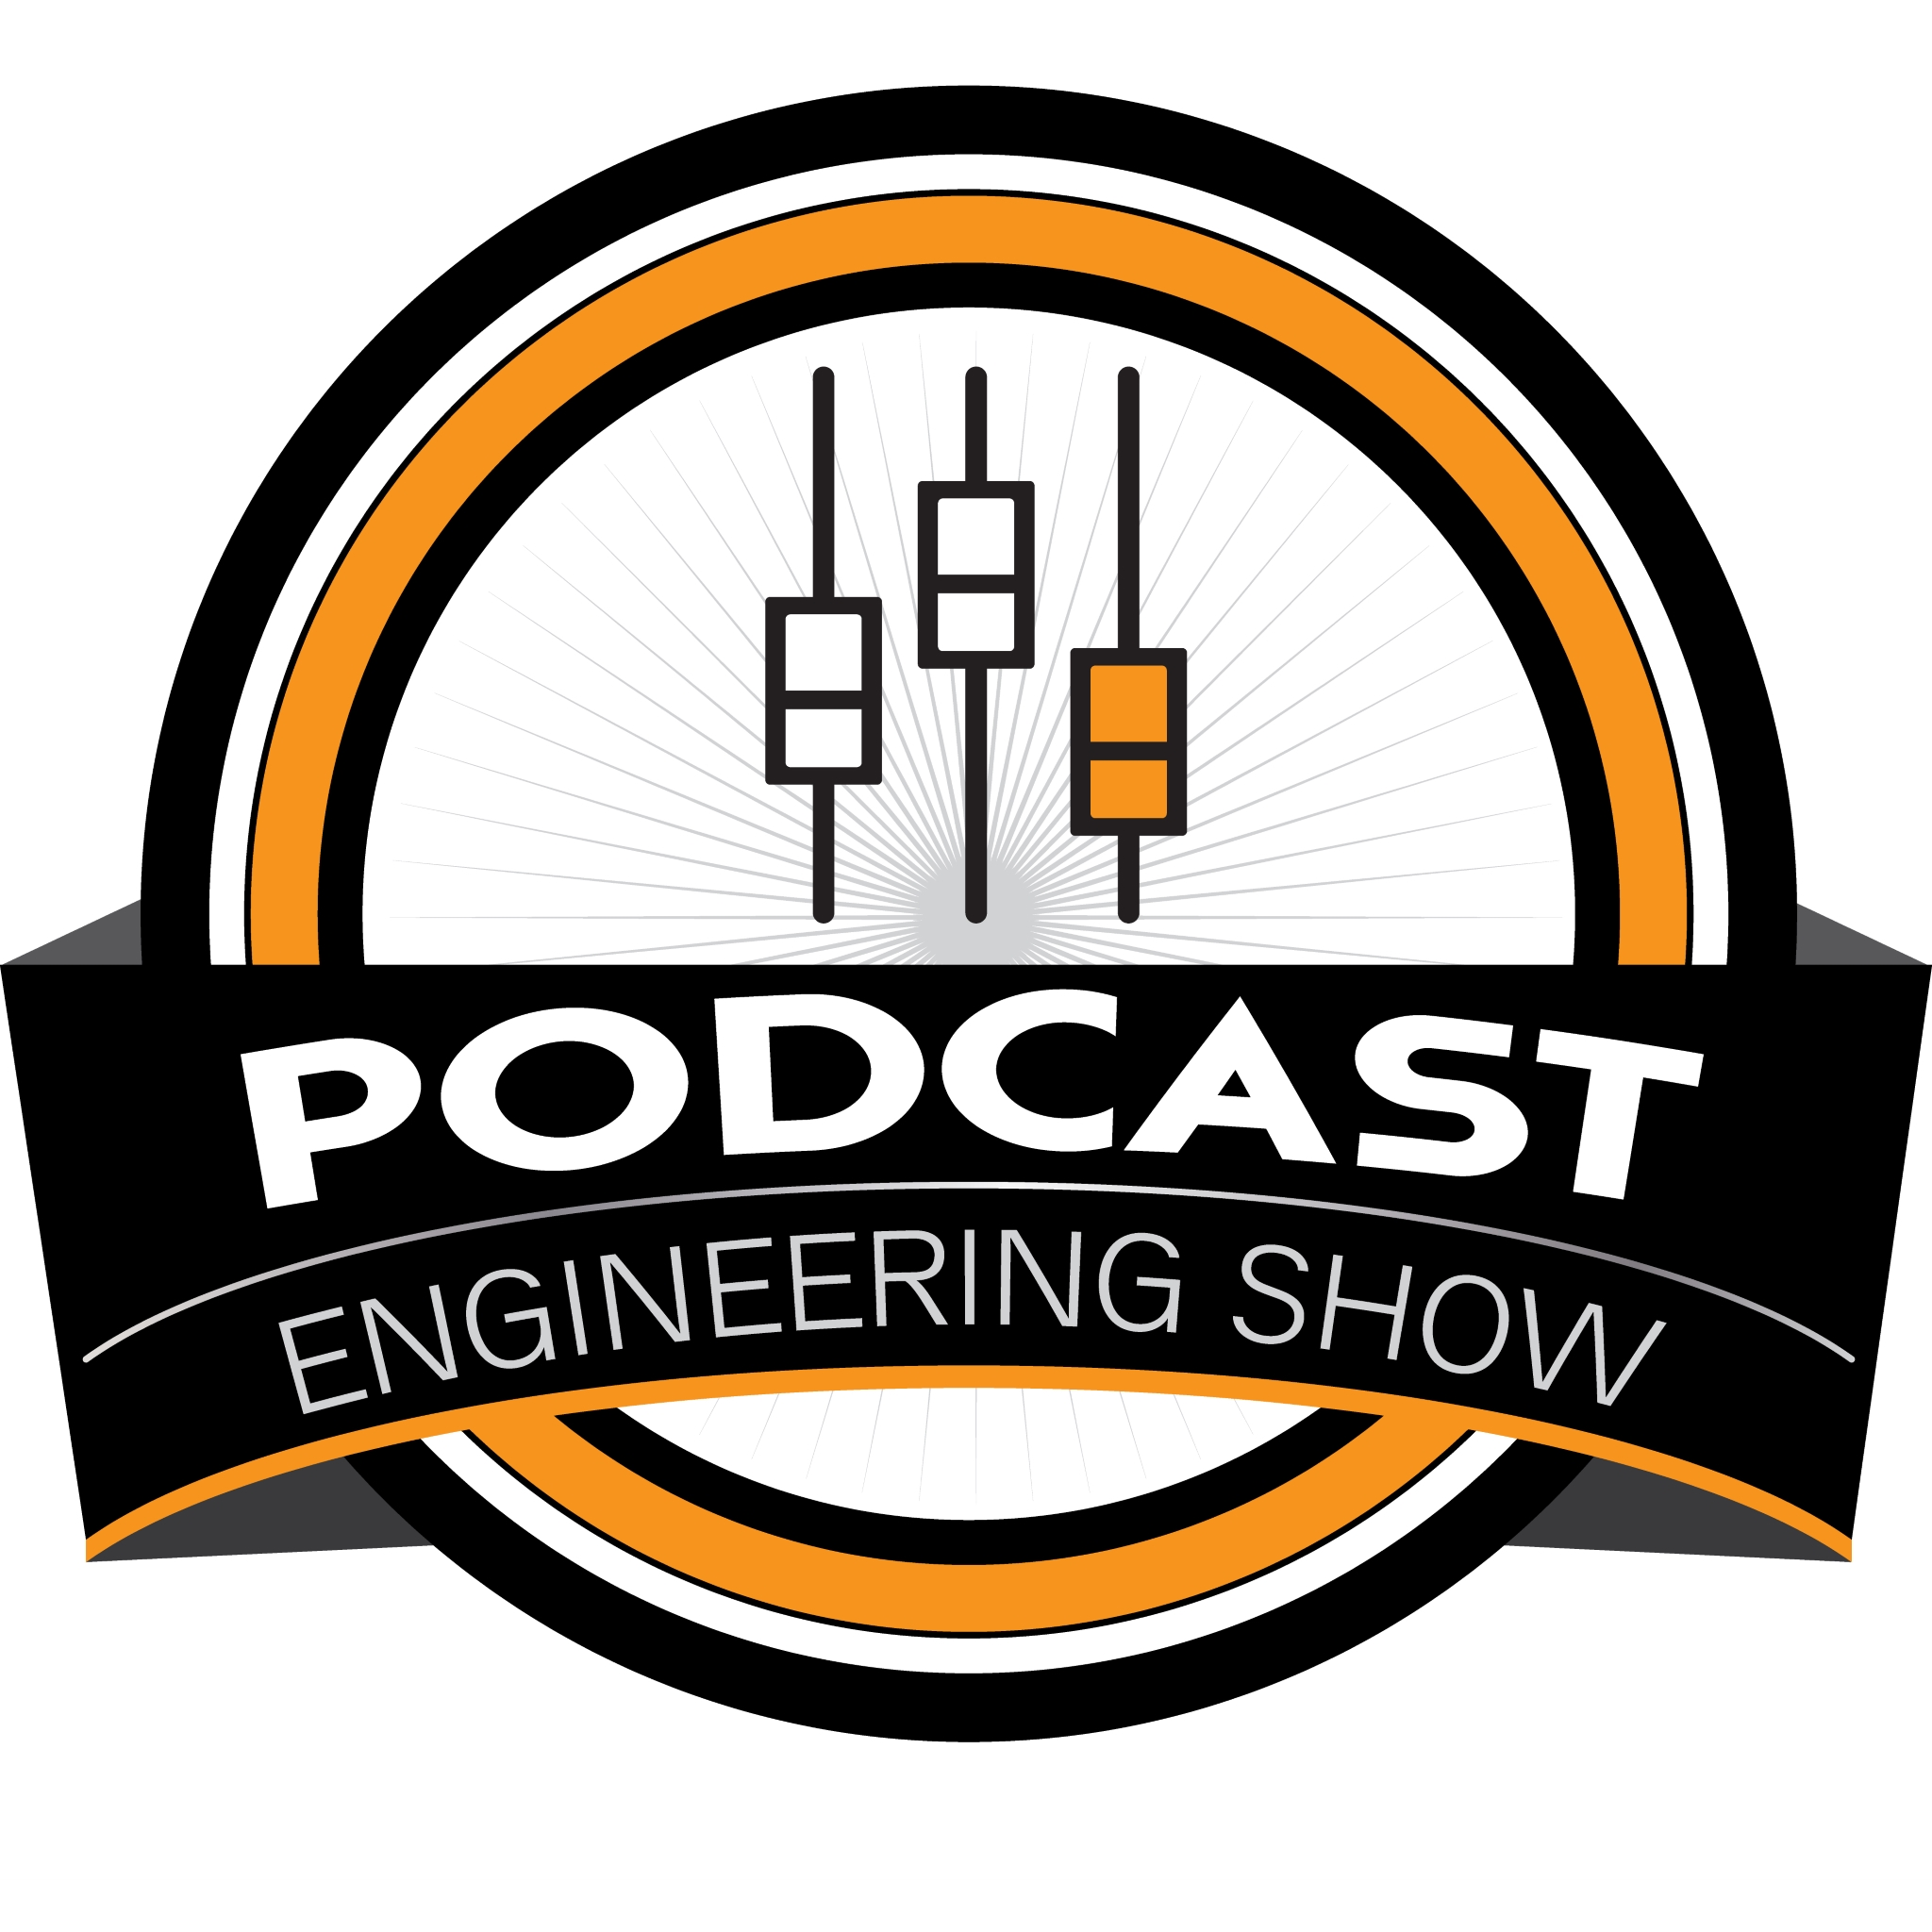 The Podcast Engineering Show show art